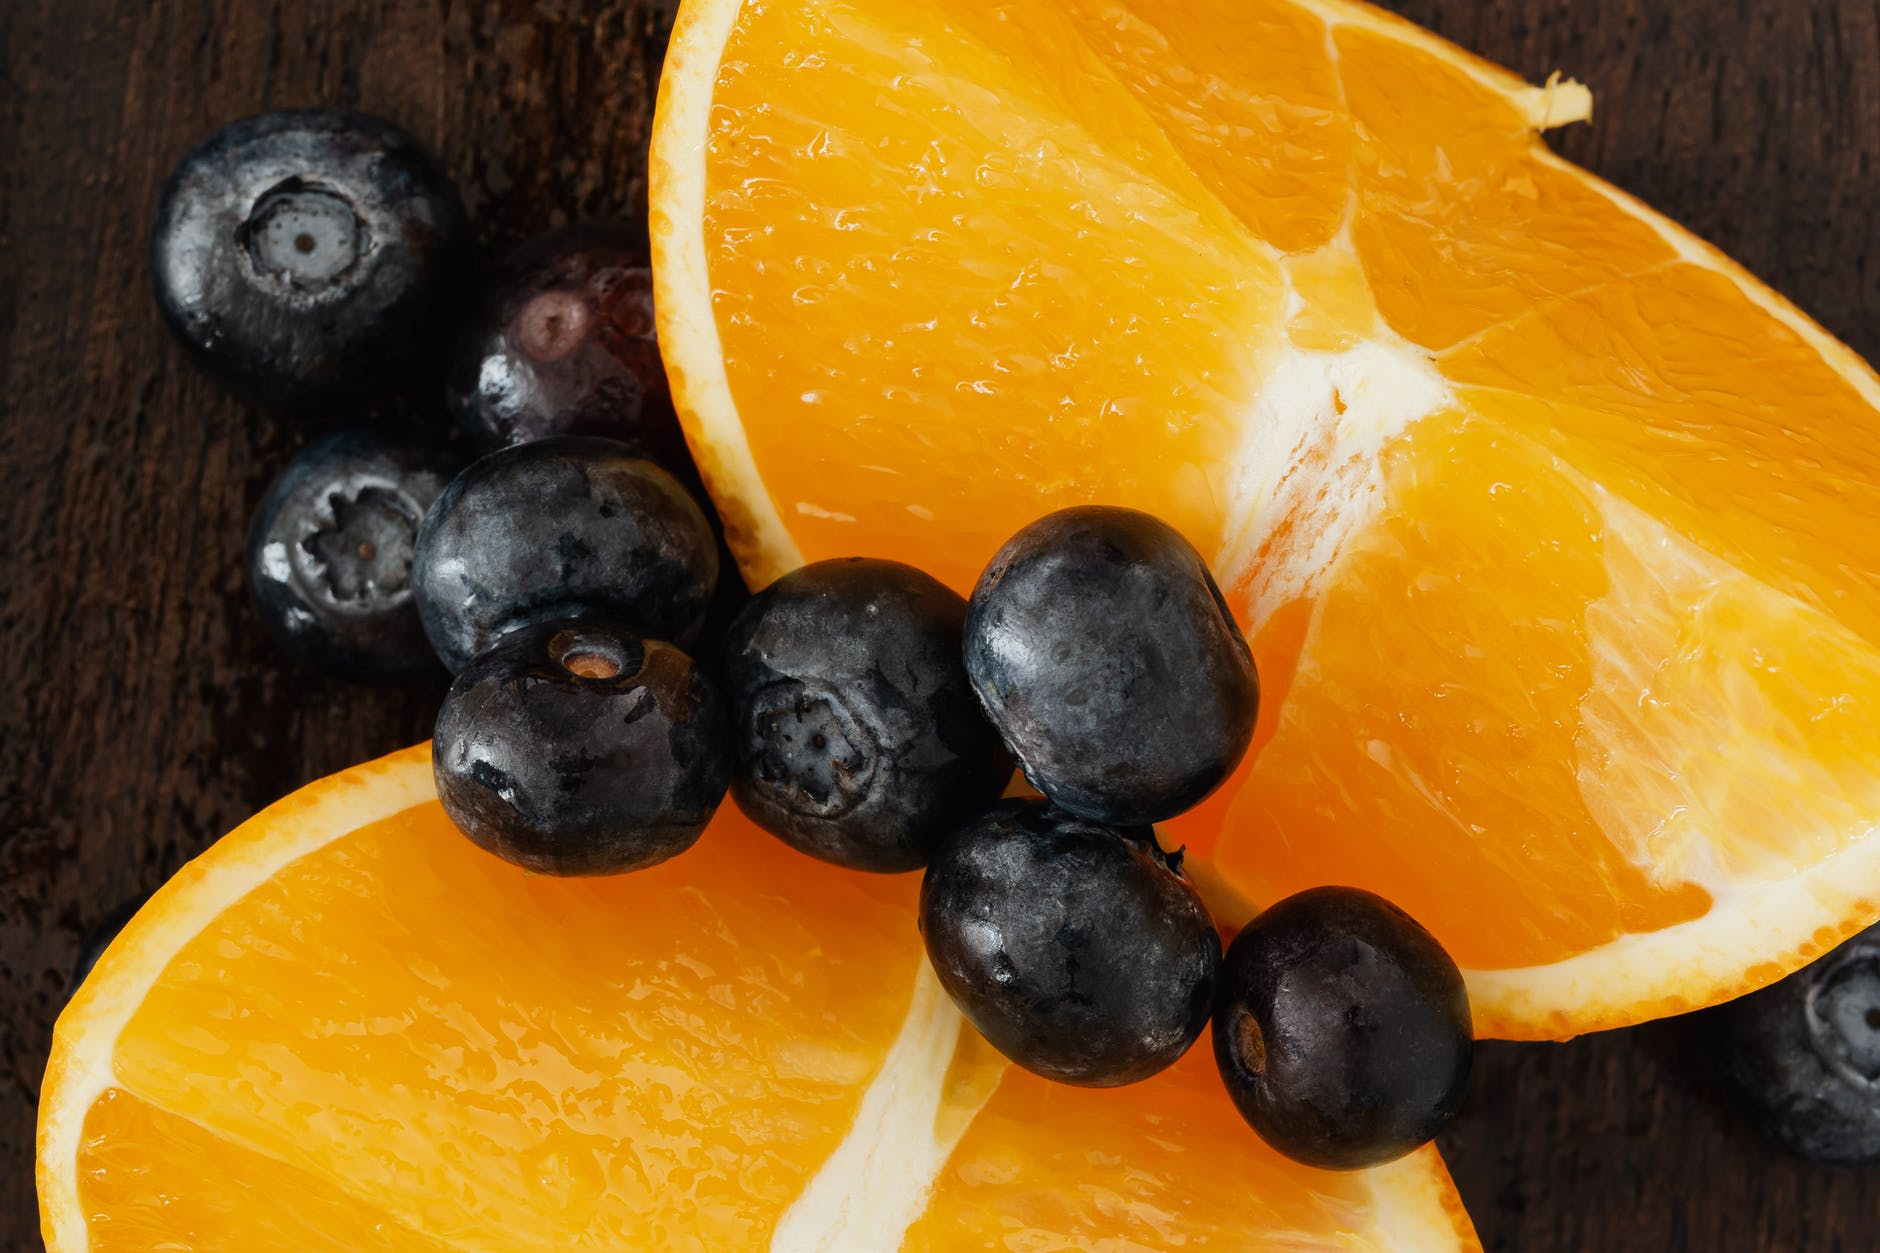 closeup of delicious blueberries placed on juicy oranges on wooden table